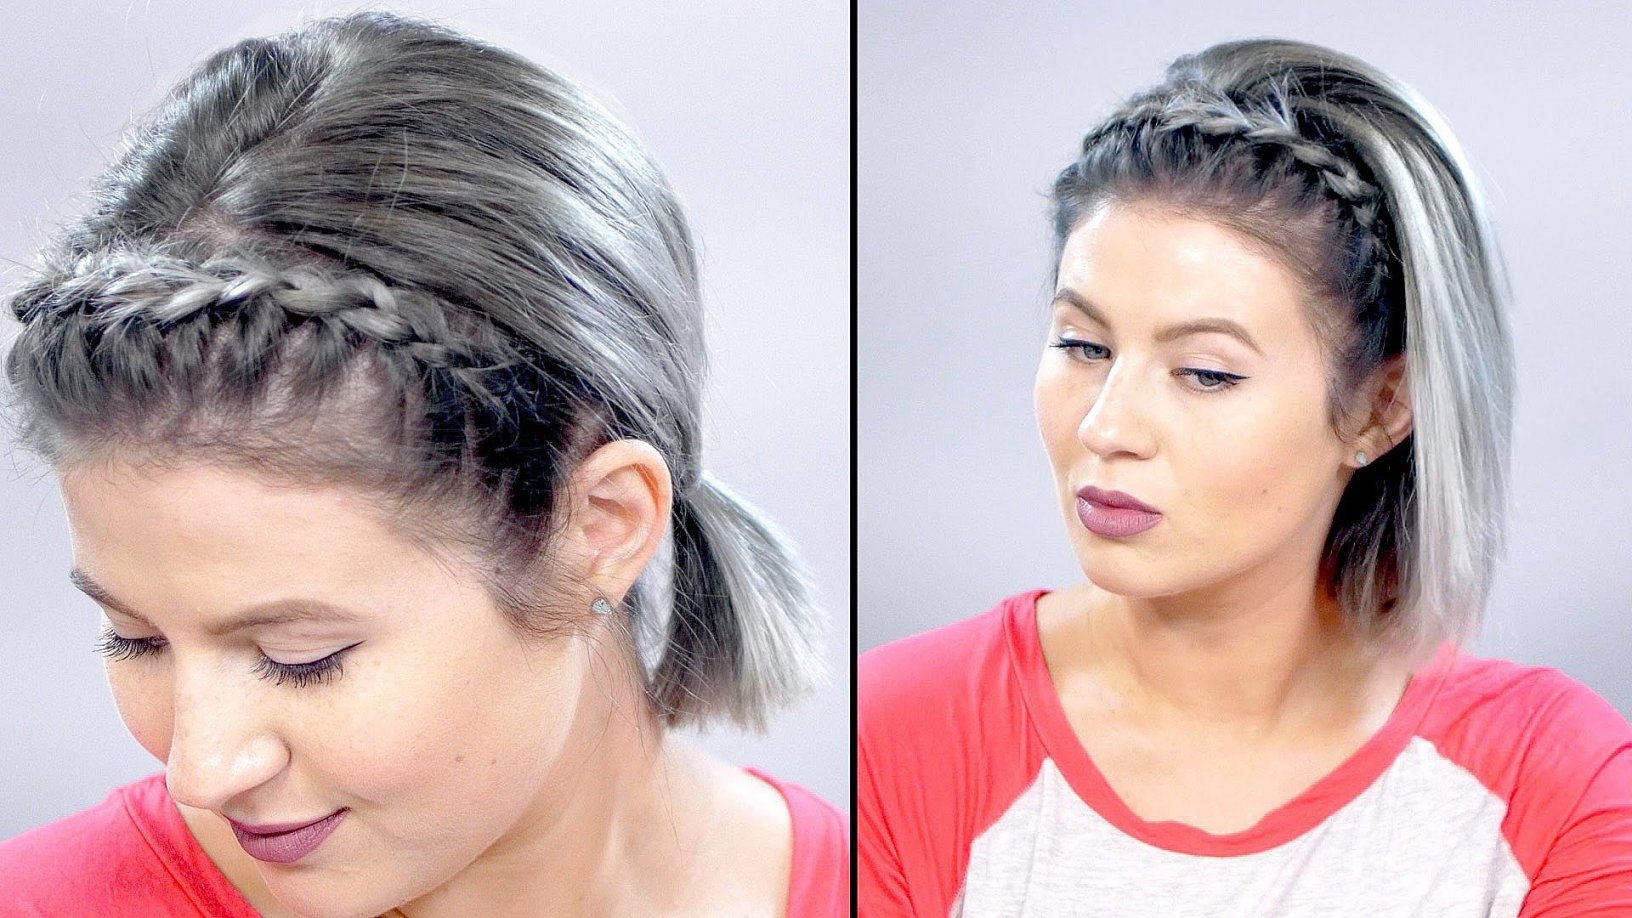 Hairstyles For Short Hair With Headbands – Best Hairstyles & Haircuts Within Short Haircuts With Headbands (View 8 of 25)